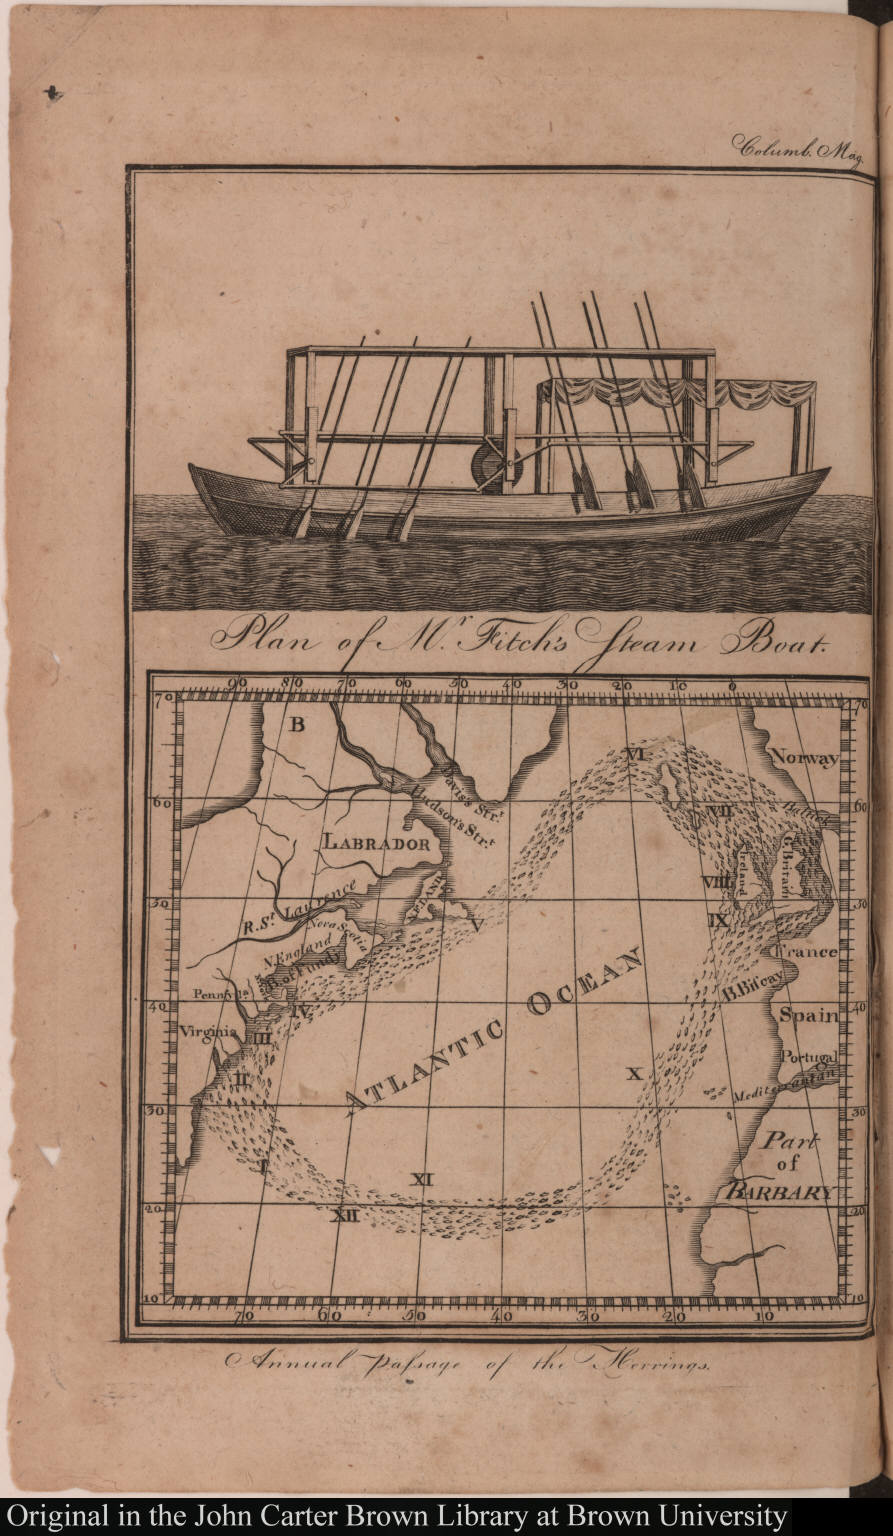 Plan of Mr. Fitch's Steam Boat; Annual passage of the Herrings.